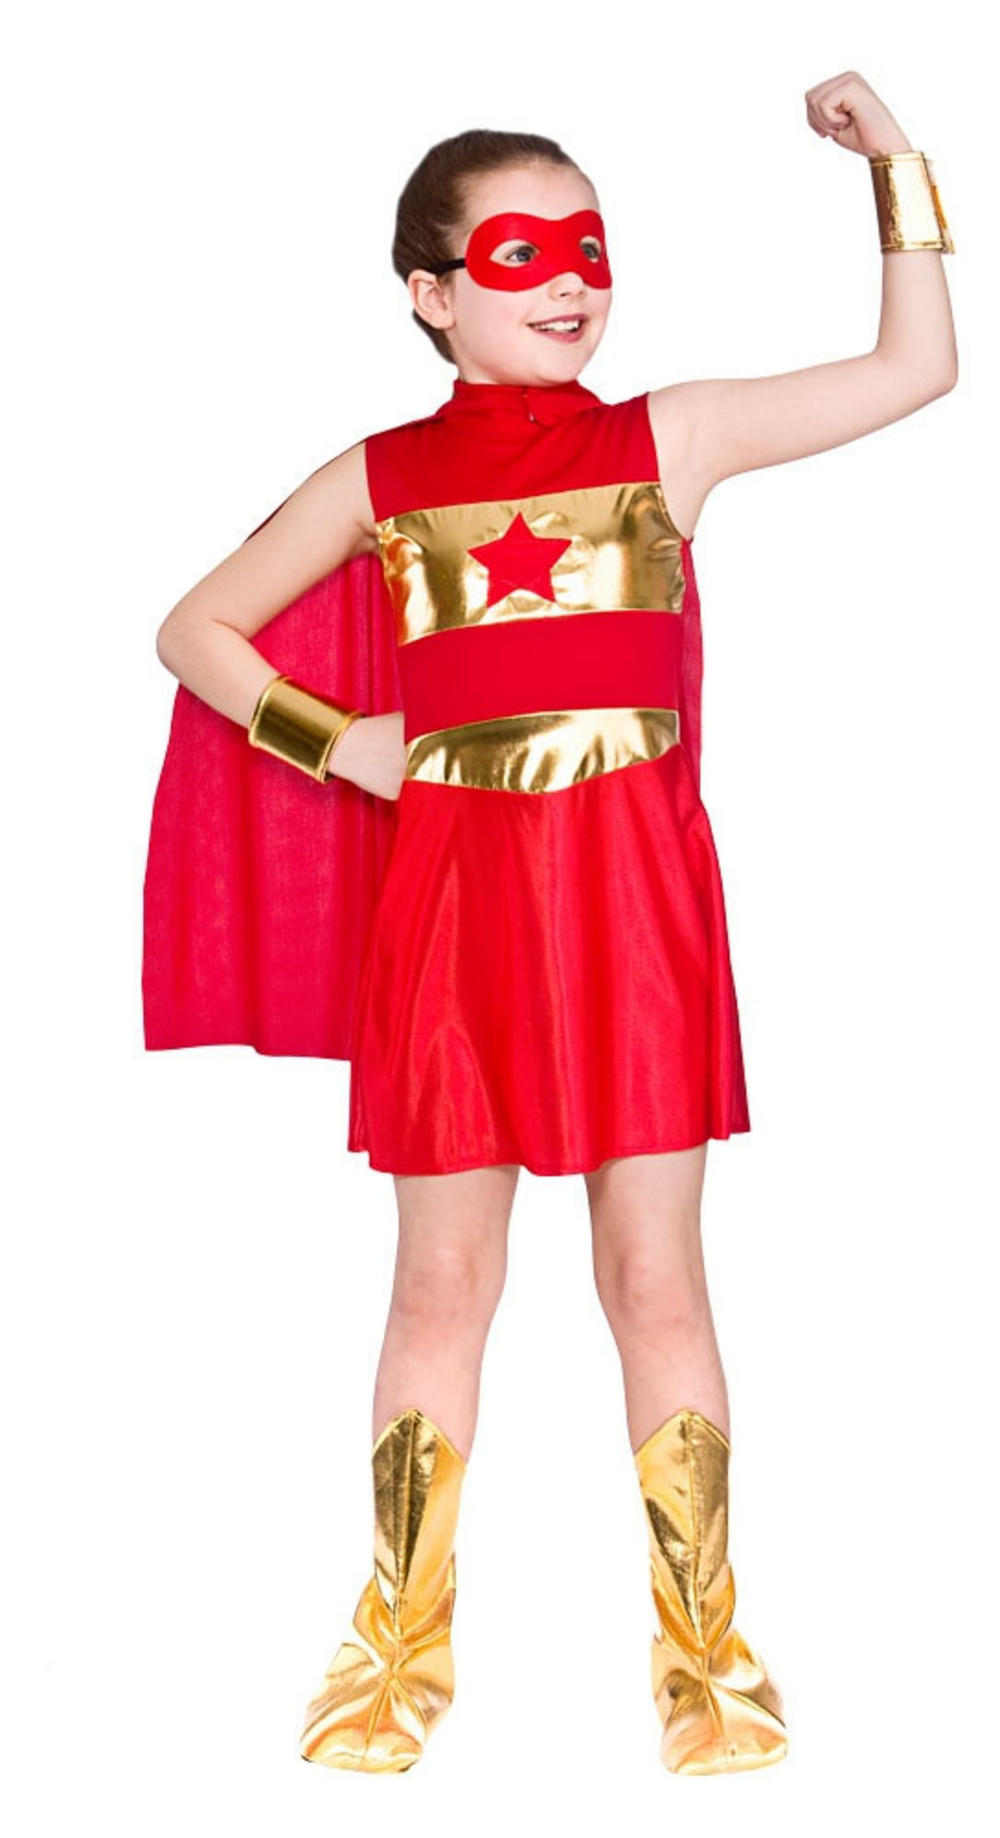 Top off your superhero costume with this amazing Red Super hero mask. SeasonsTrading Child Red/Black Reversible Superhero Mask ~ Kids Mask. by SeasonsTrading. $ $ 2 88 + $ shipping. 4 out of 5 stars 3. Promotion Available; See Details. Free .